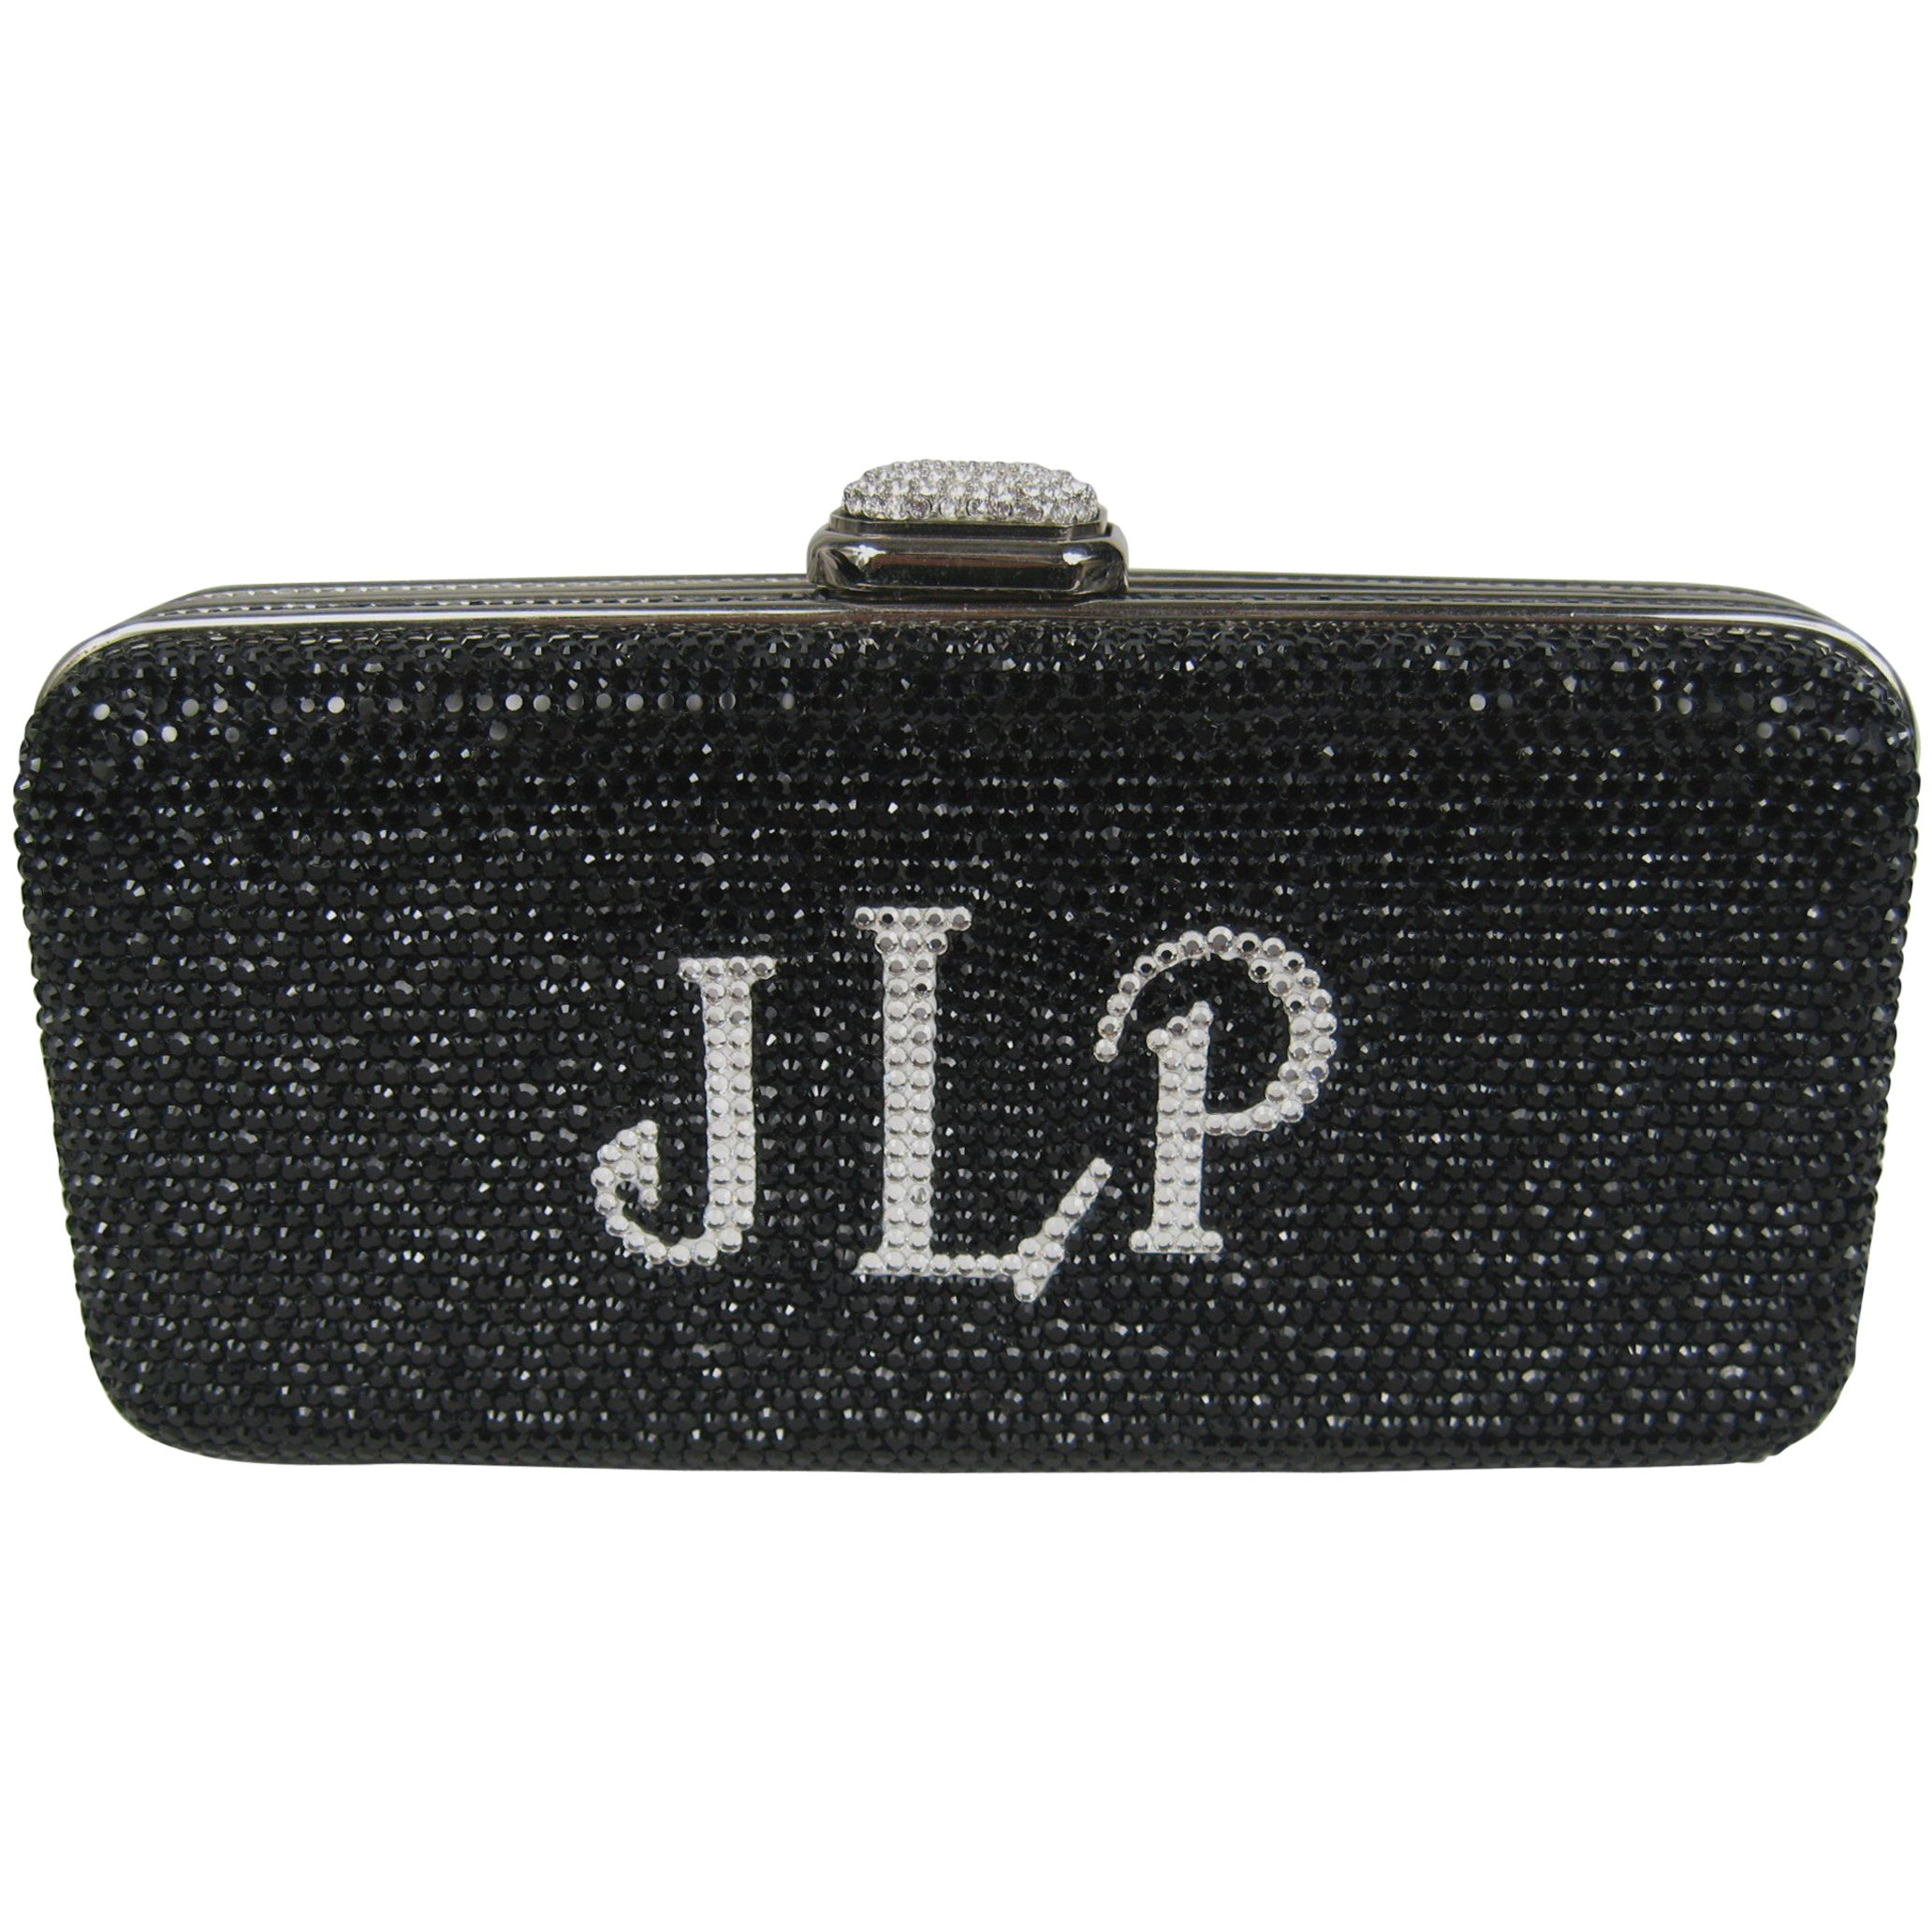 Judith Leiber Black Jlp Black Silver Minaudiere Clutch Double Sided $2625. New tOgKjYRFwg